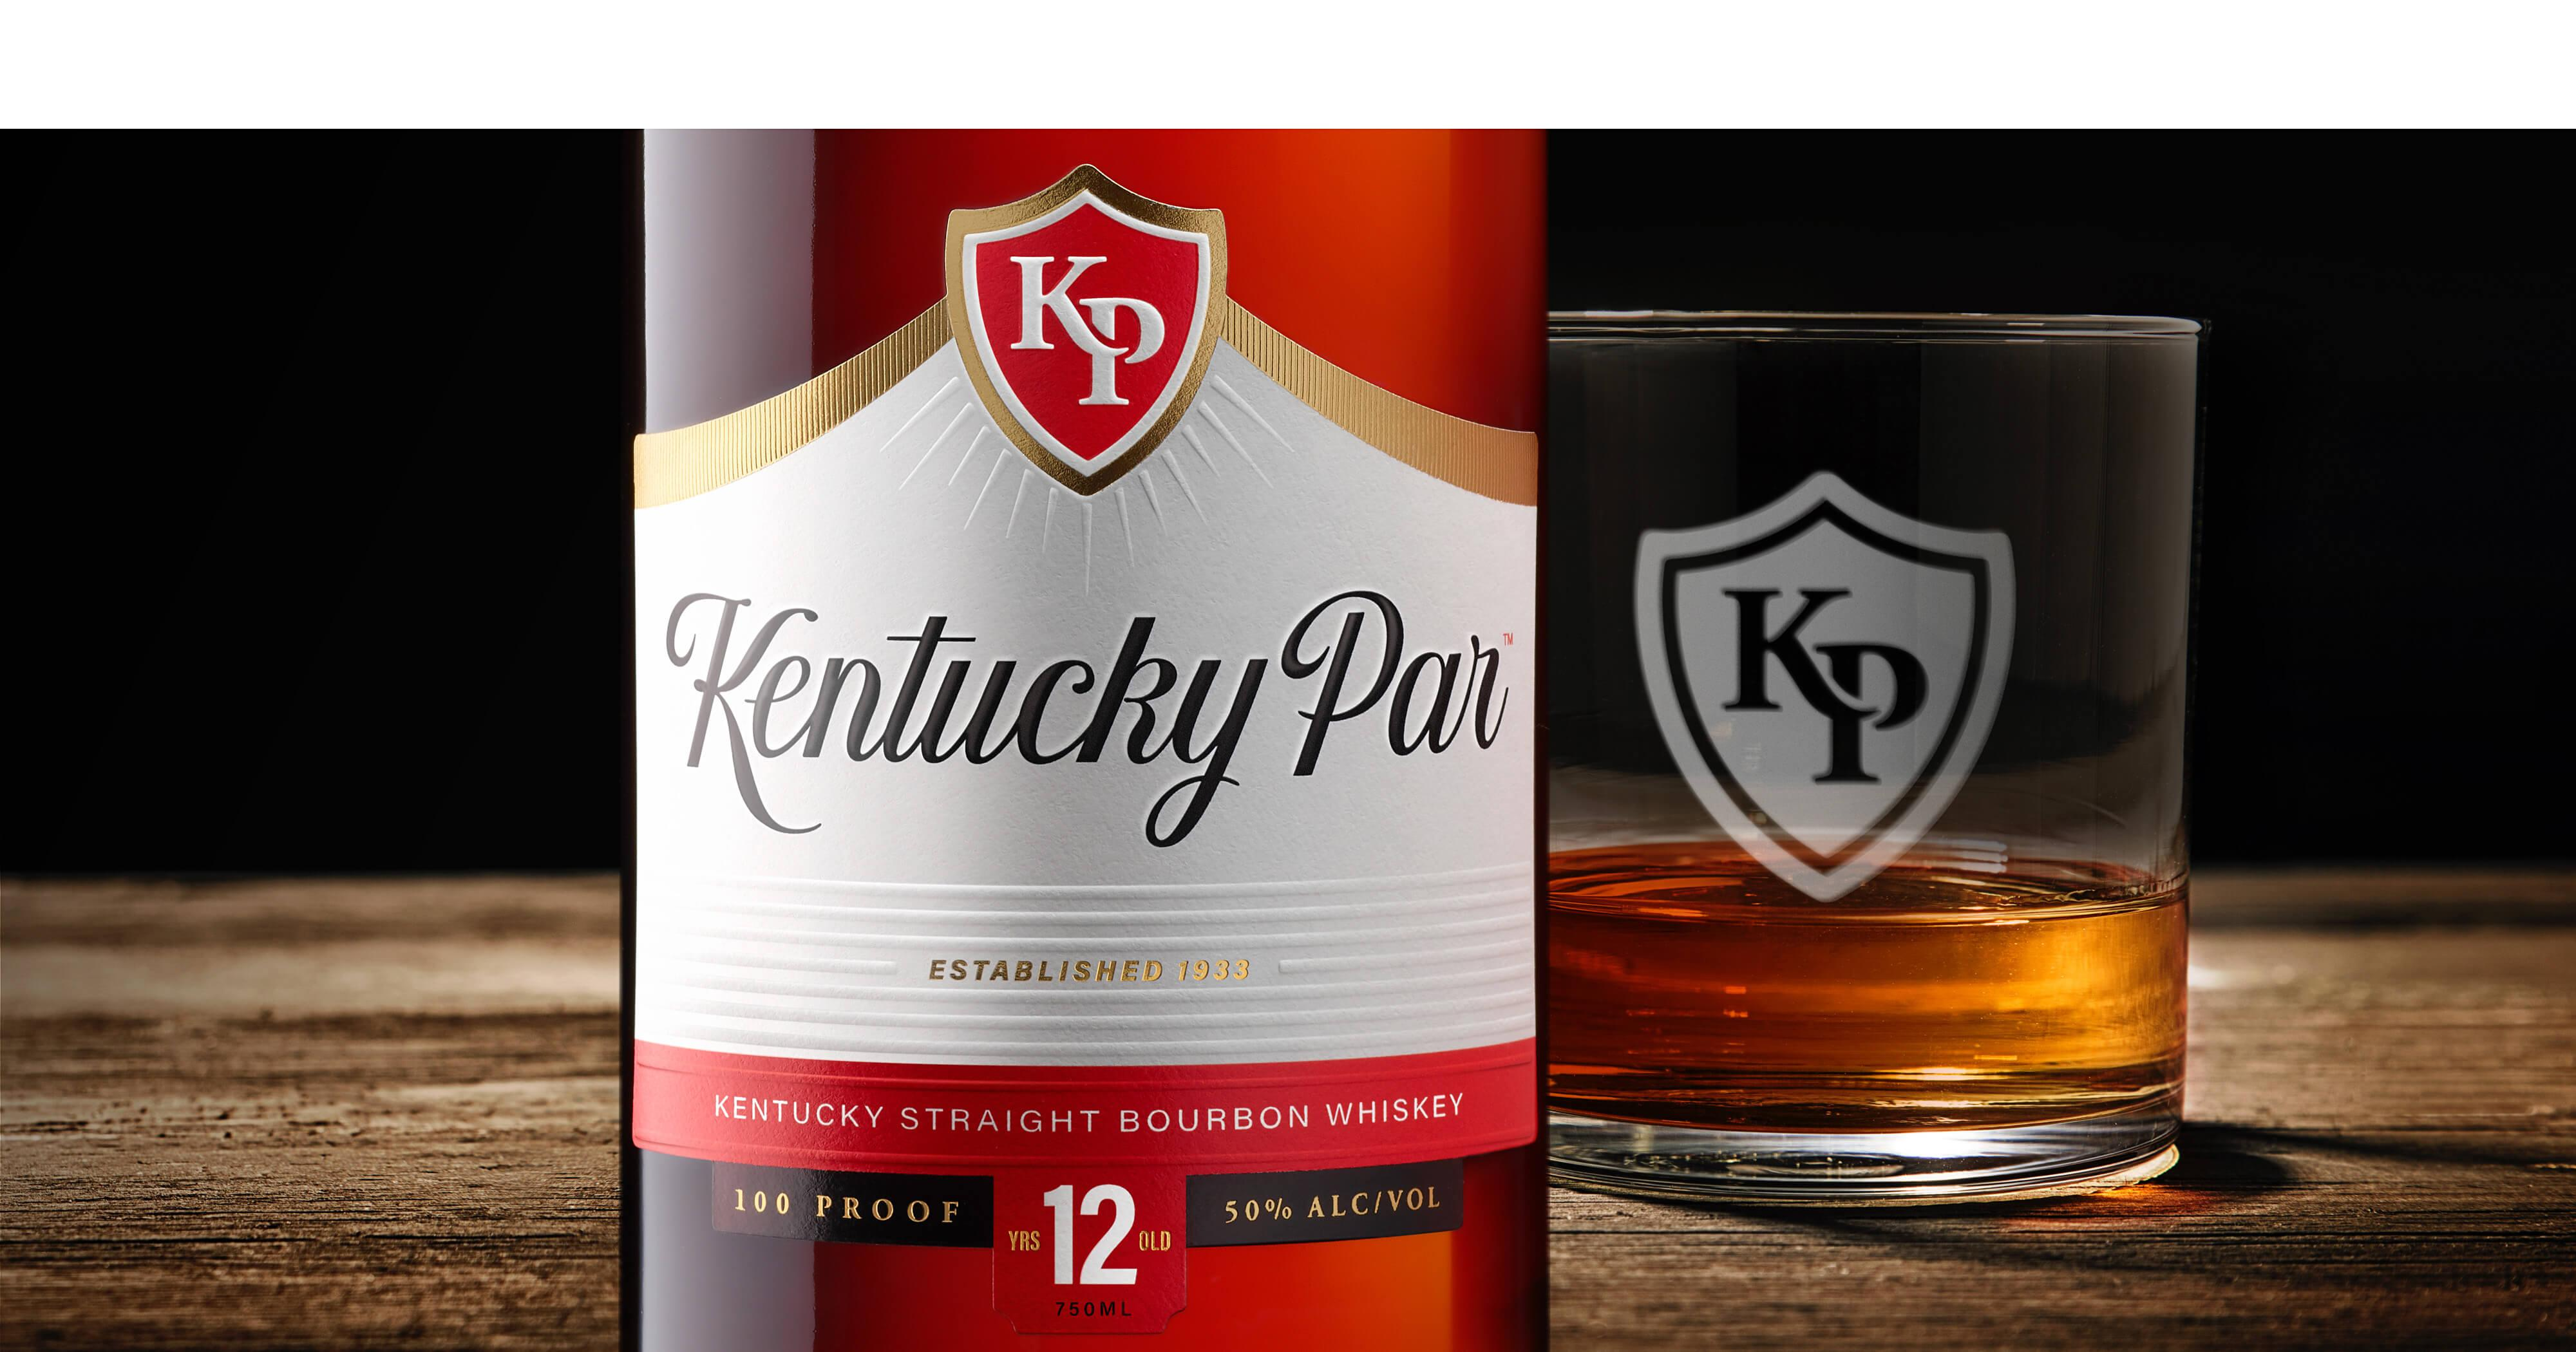 Kentucky Par Bourbon Packaging